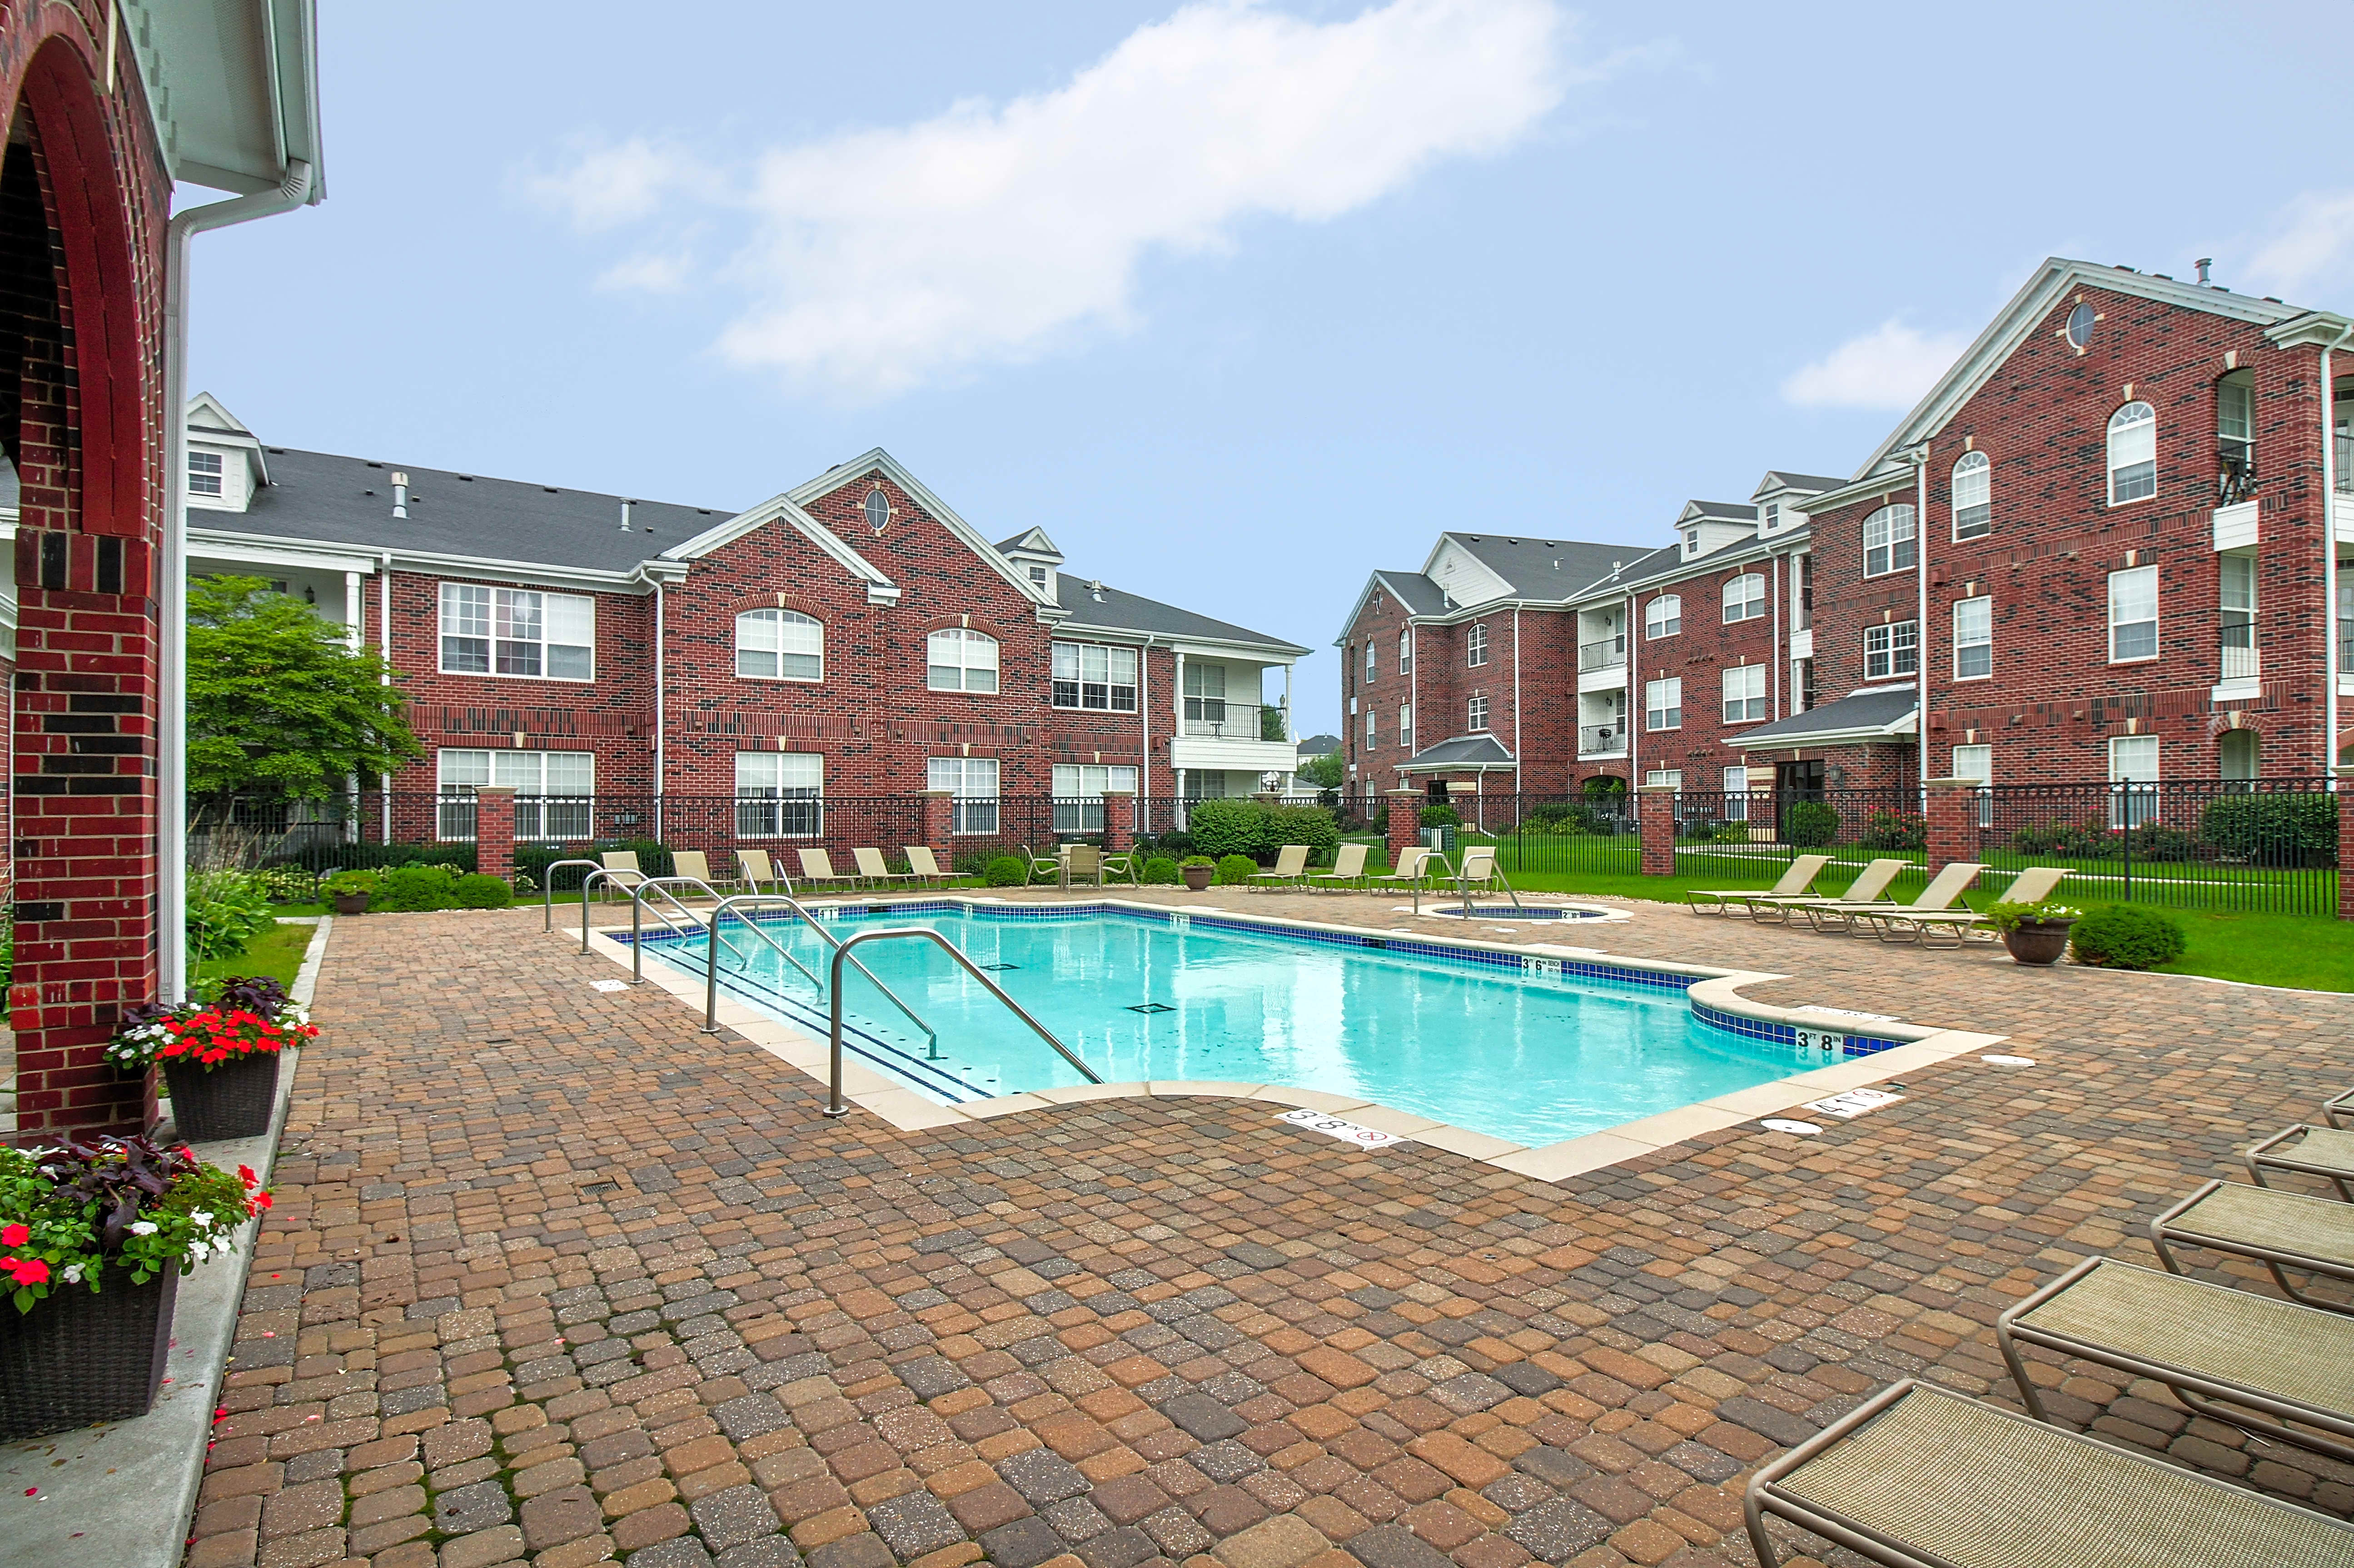 Apartments Near University of Nebraska Rockledge Oaks for University of Nebraska - Lincoln Students in Lincoln, NE